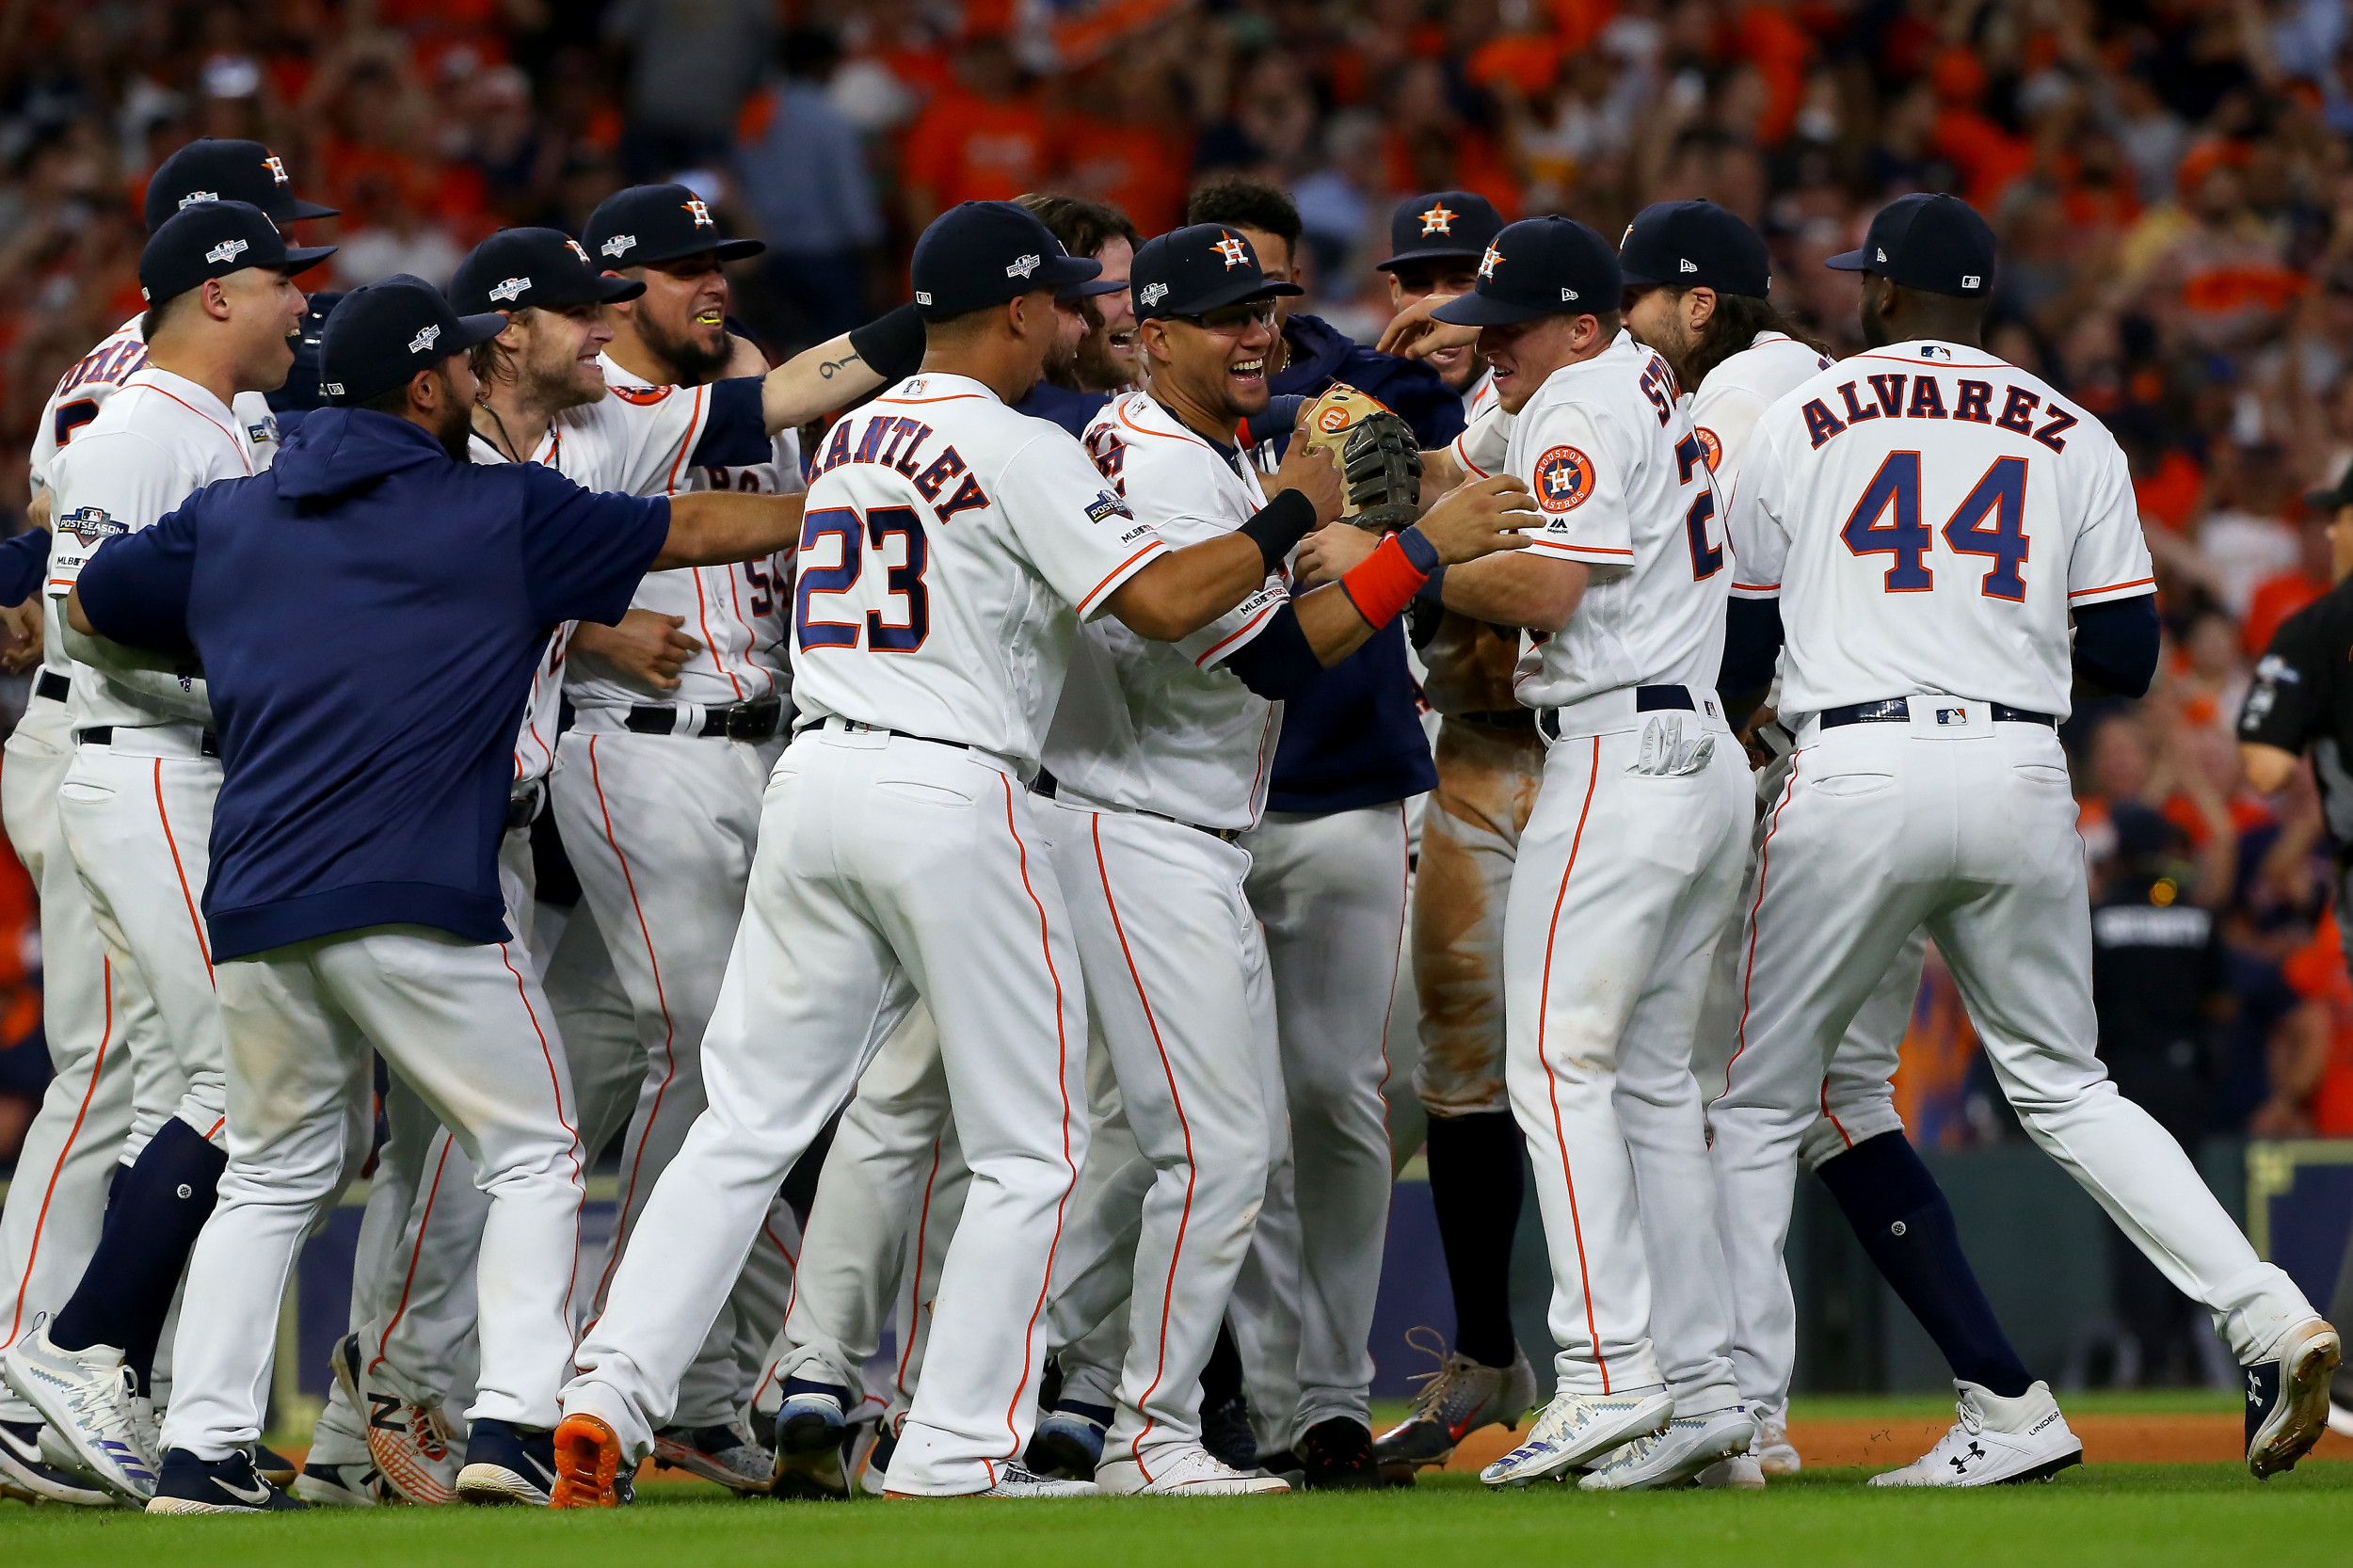 Astros 2019 >> Alcs Game 1 2019 New York Yankees Vs Houston Astros